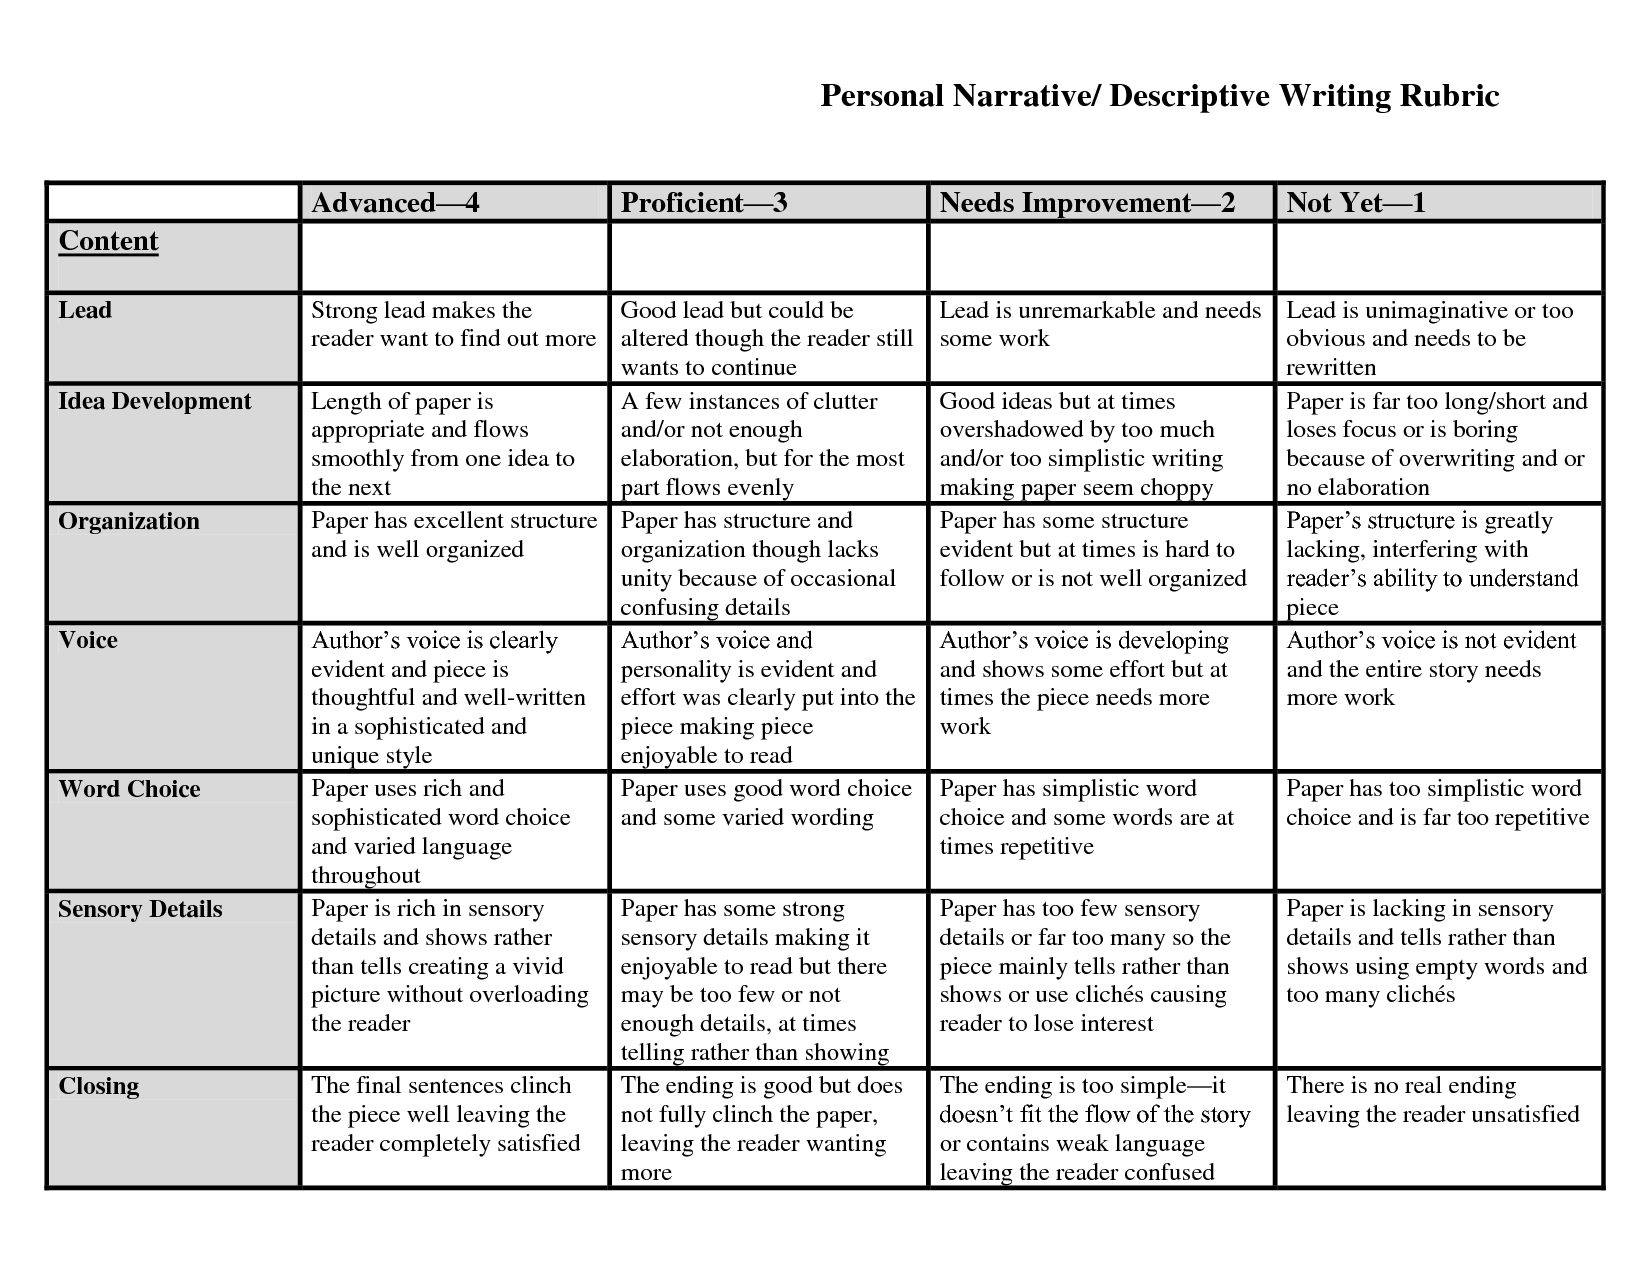 personal narrative descriptive writing rubric language arts rubrics middot personal narrative descriptive writing rubric